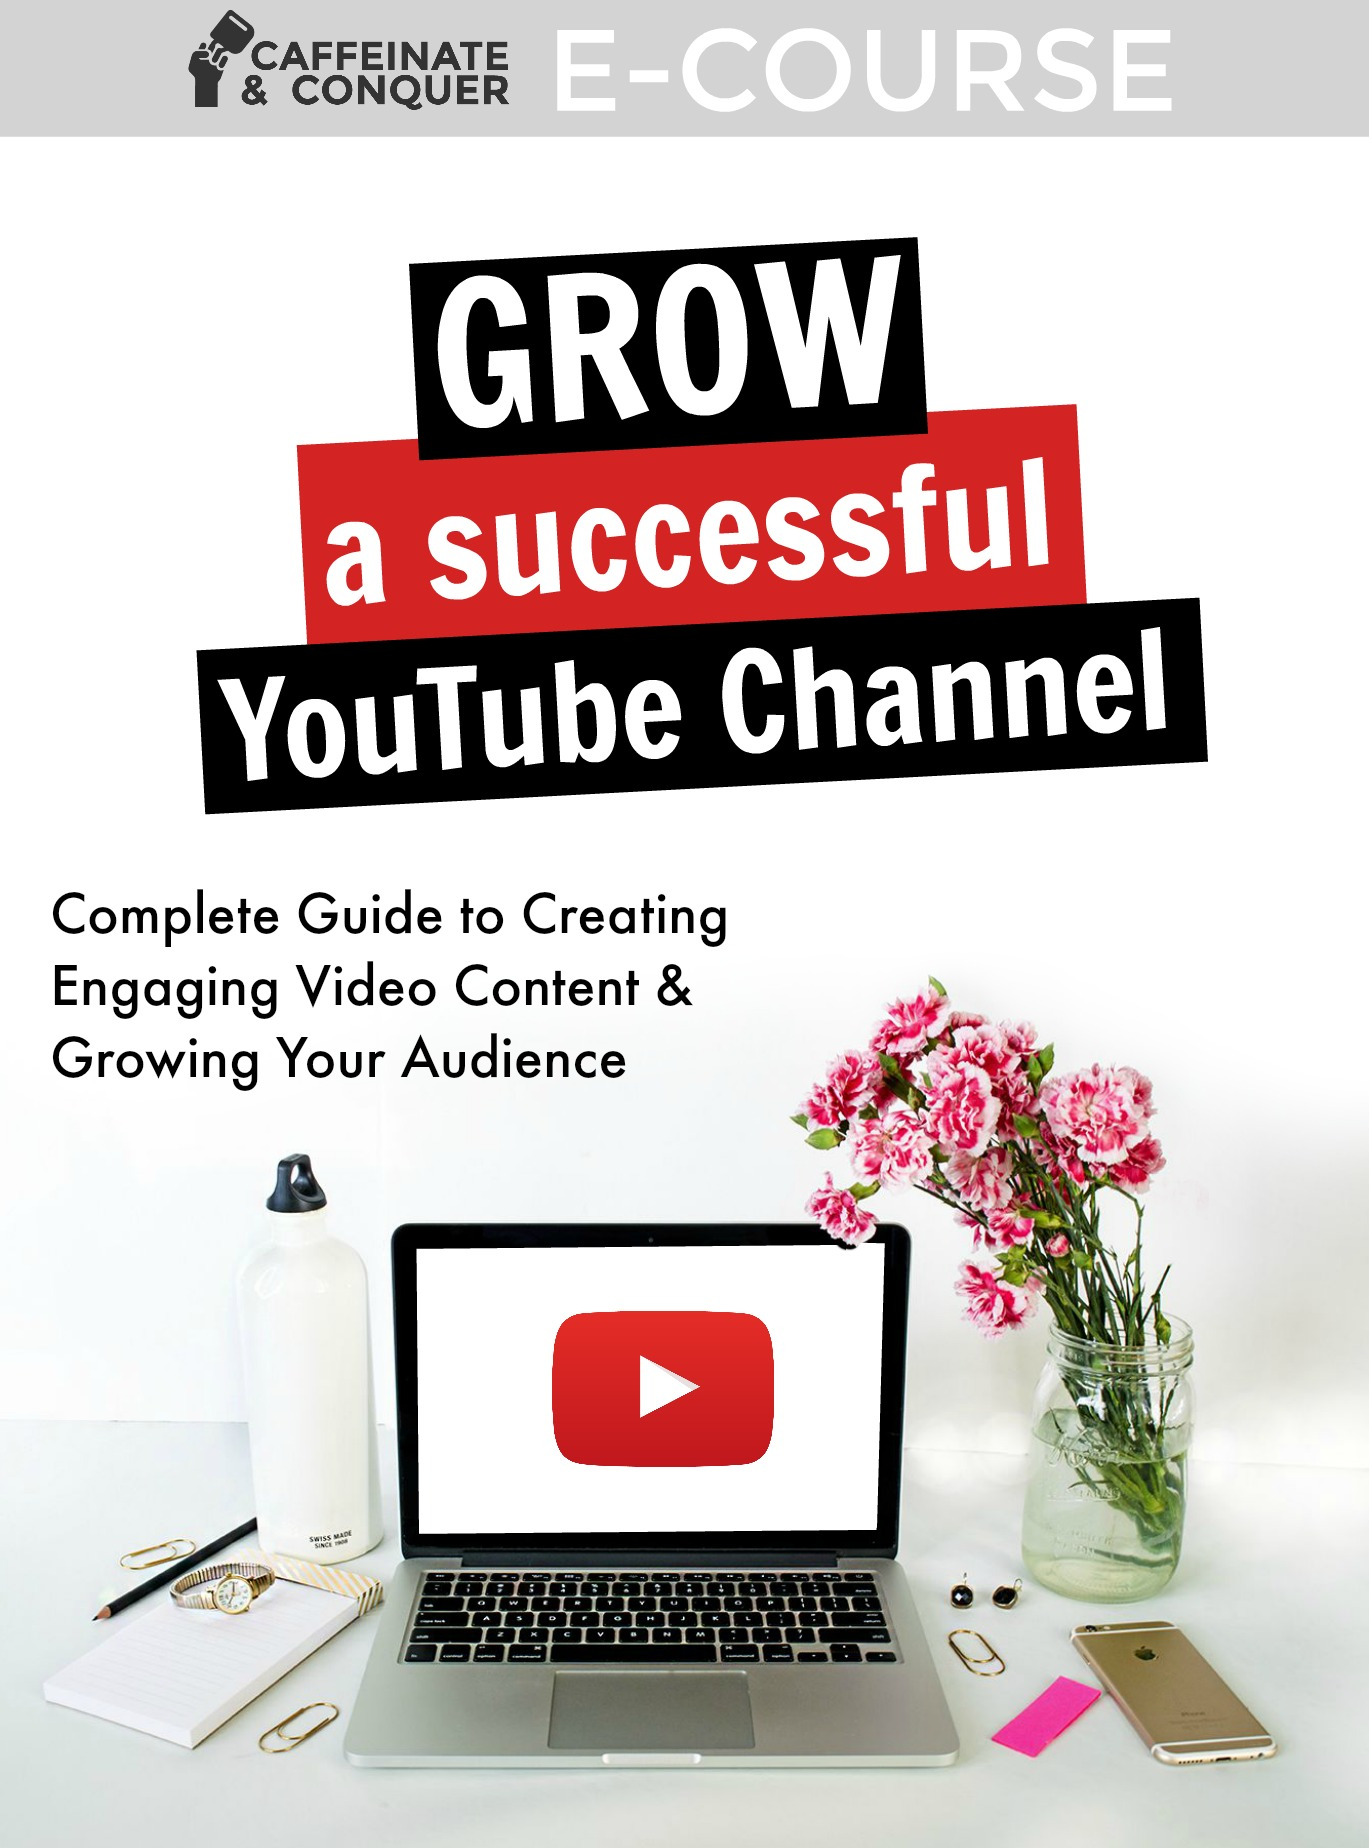 Conquer YouTube | E-course on growing a successful YouTube channel